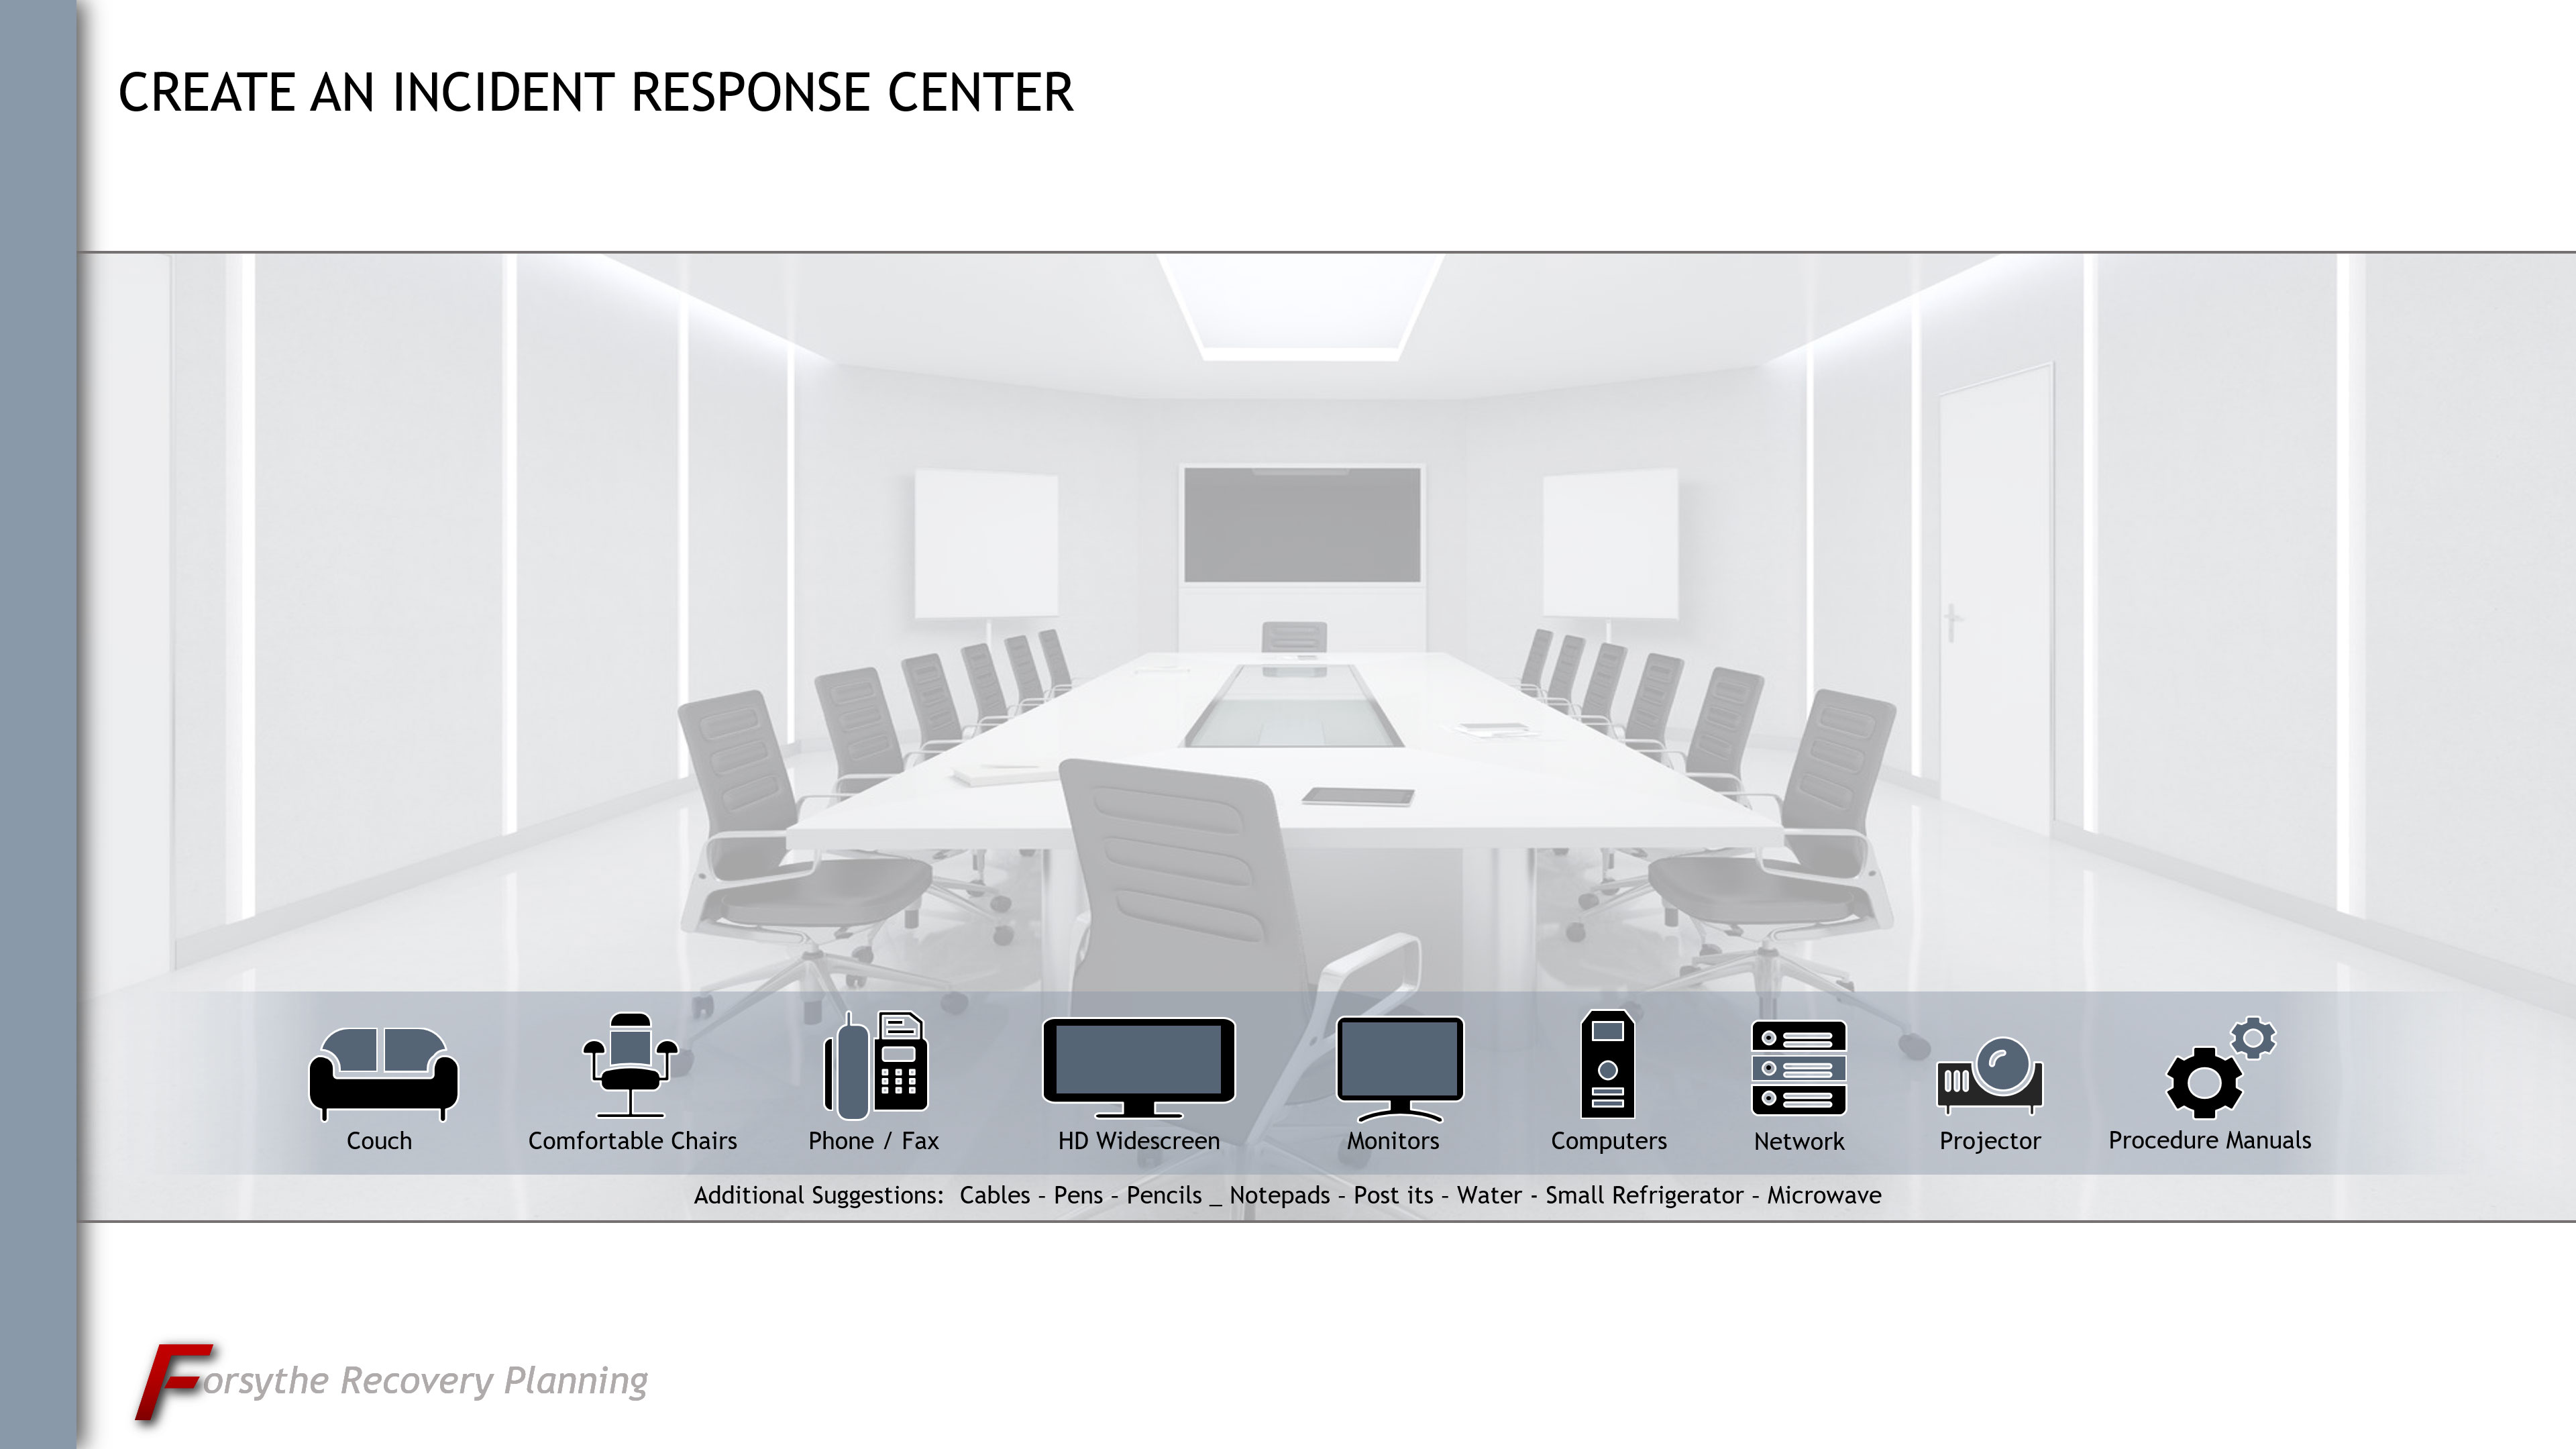 ResponseCenter